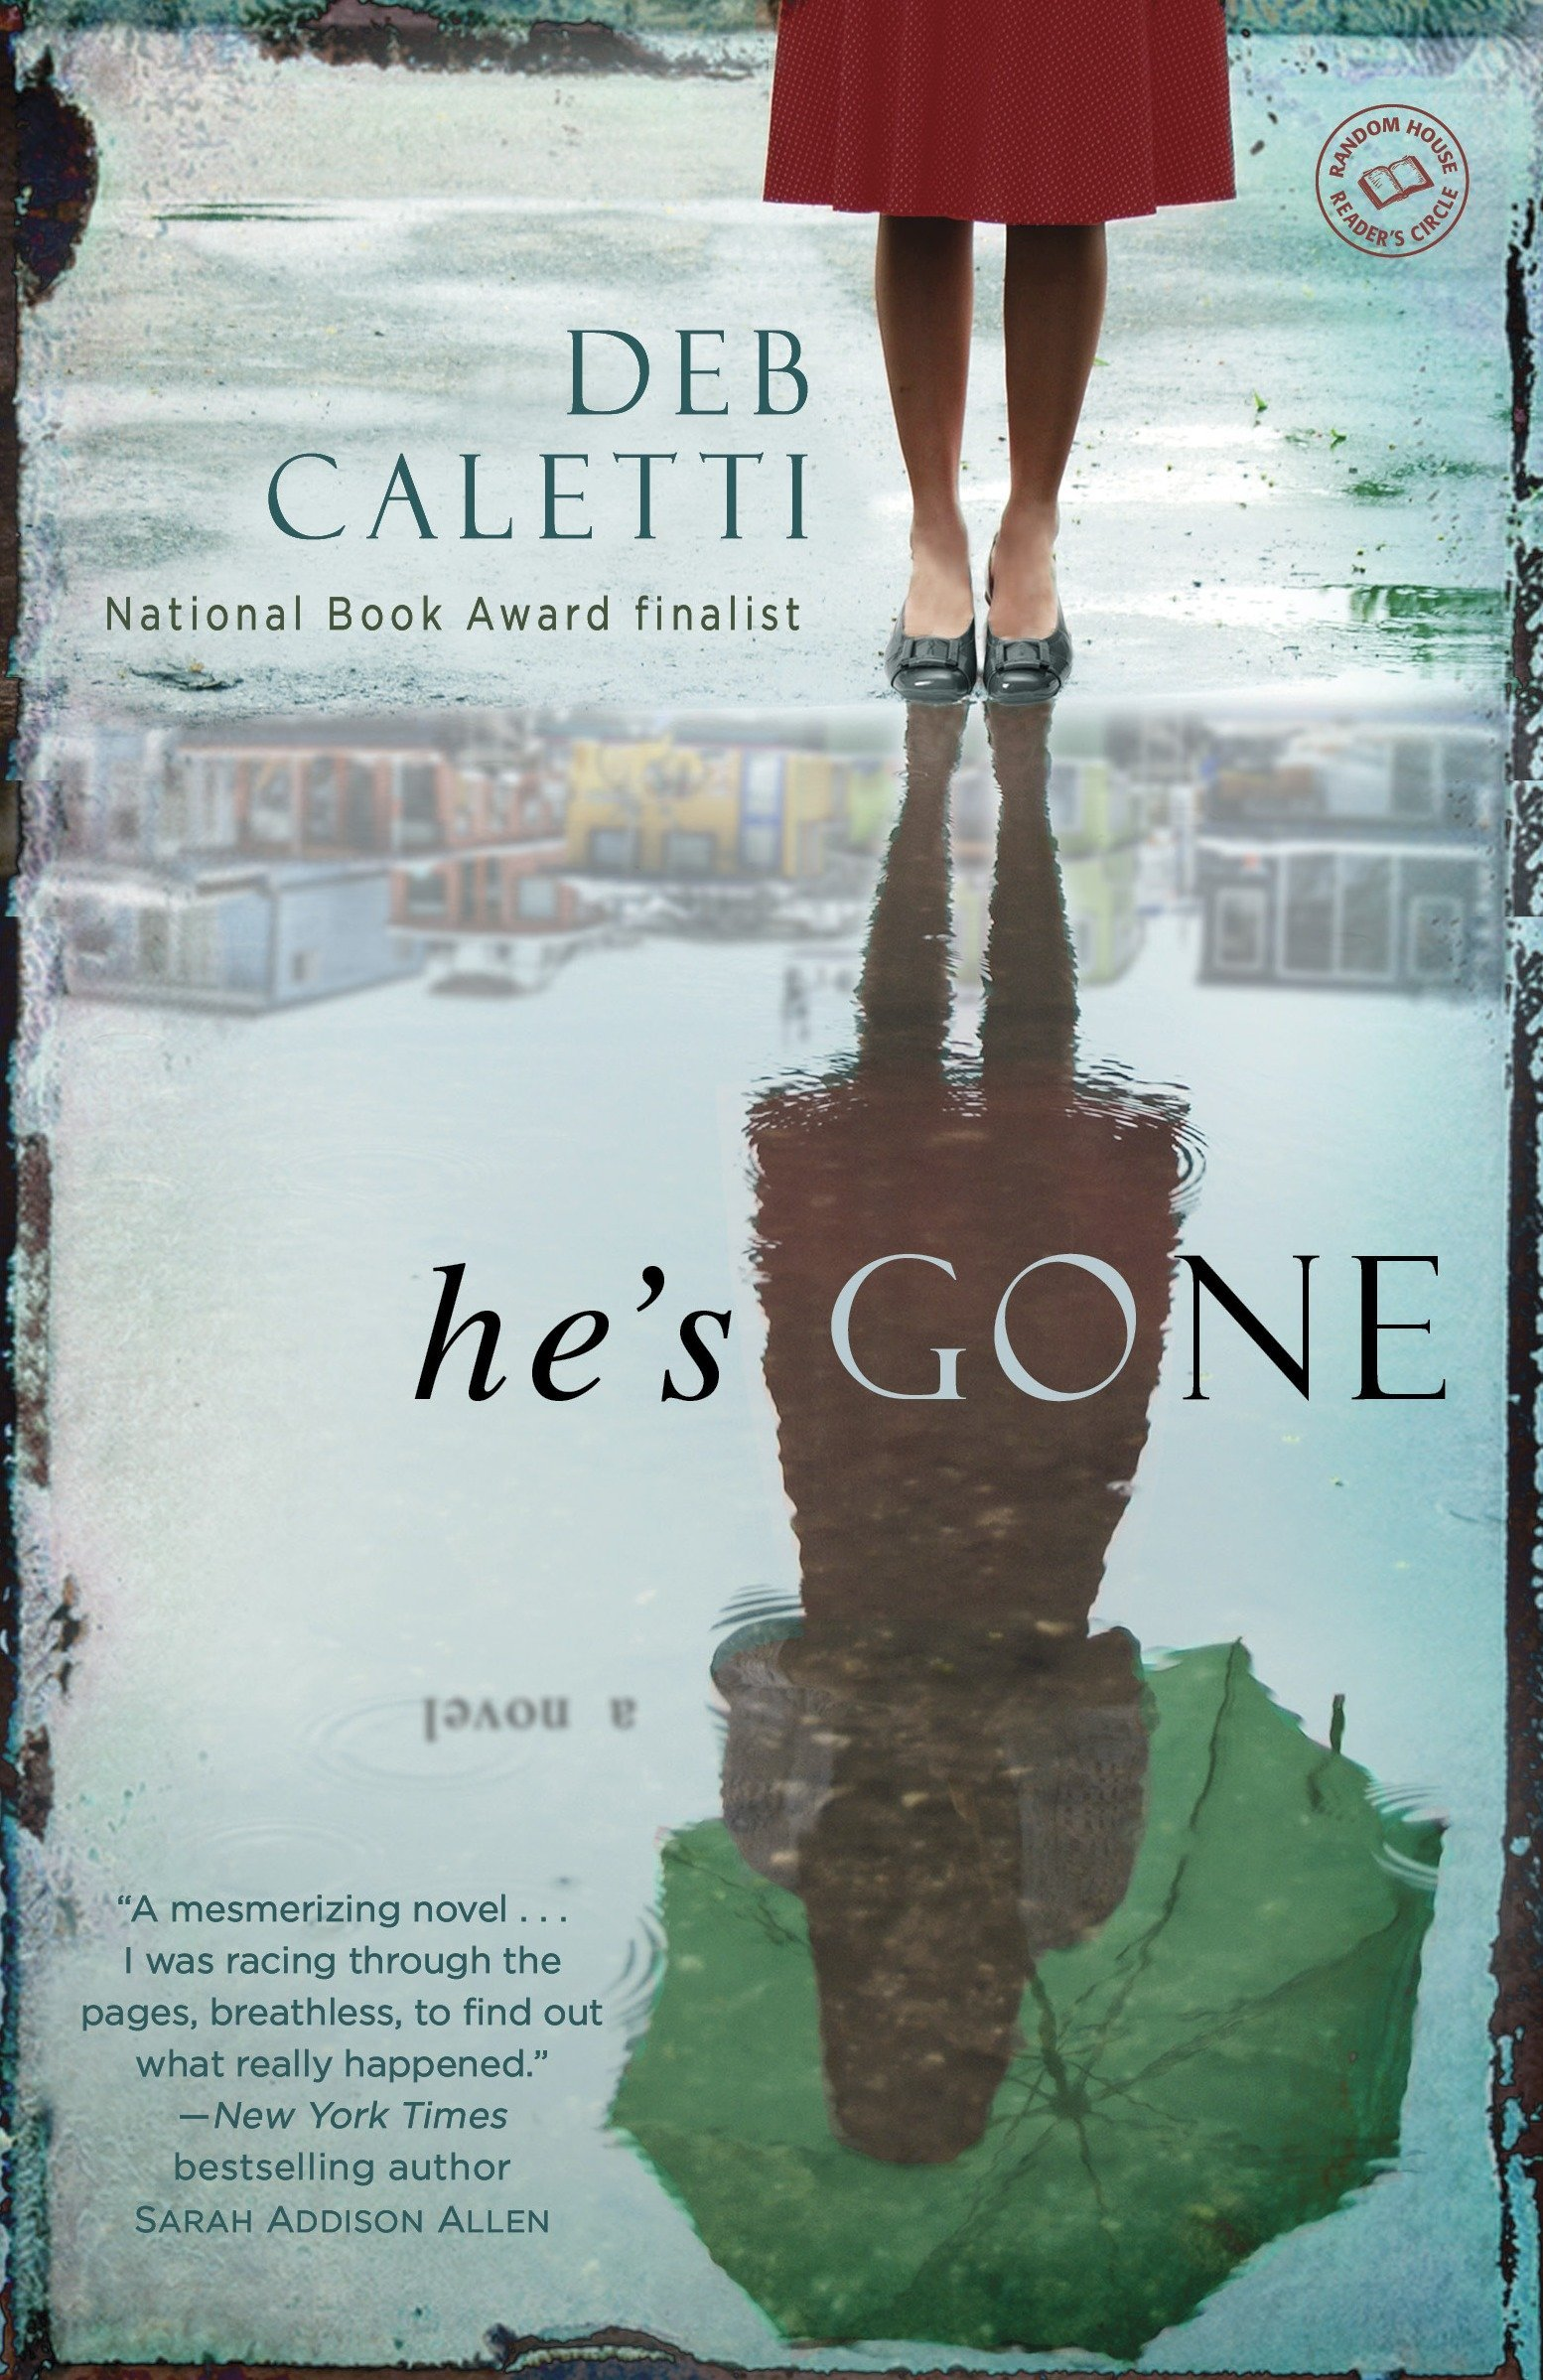 Stay deb caletti goodreads giveaways